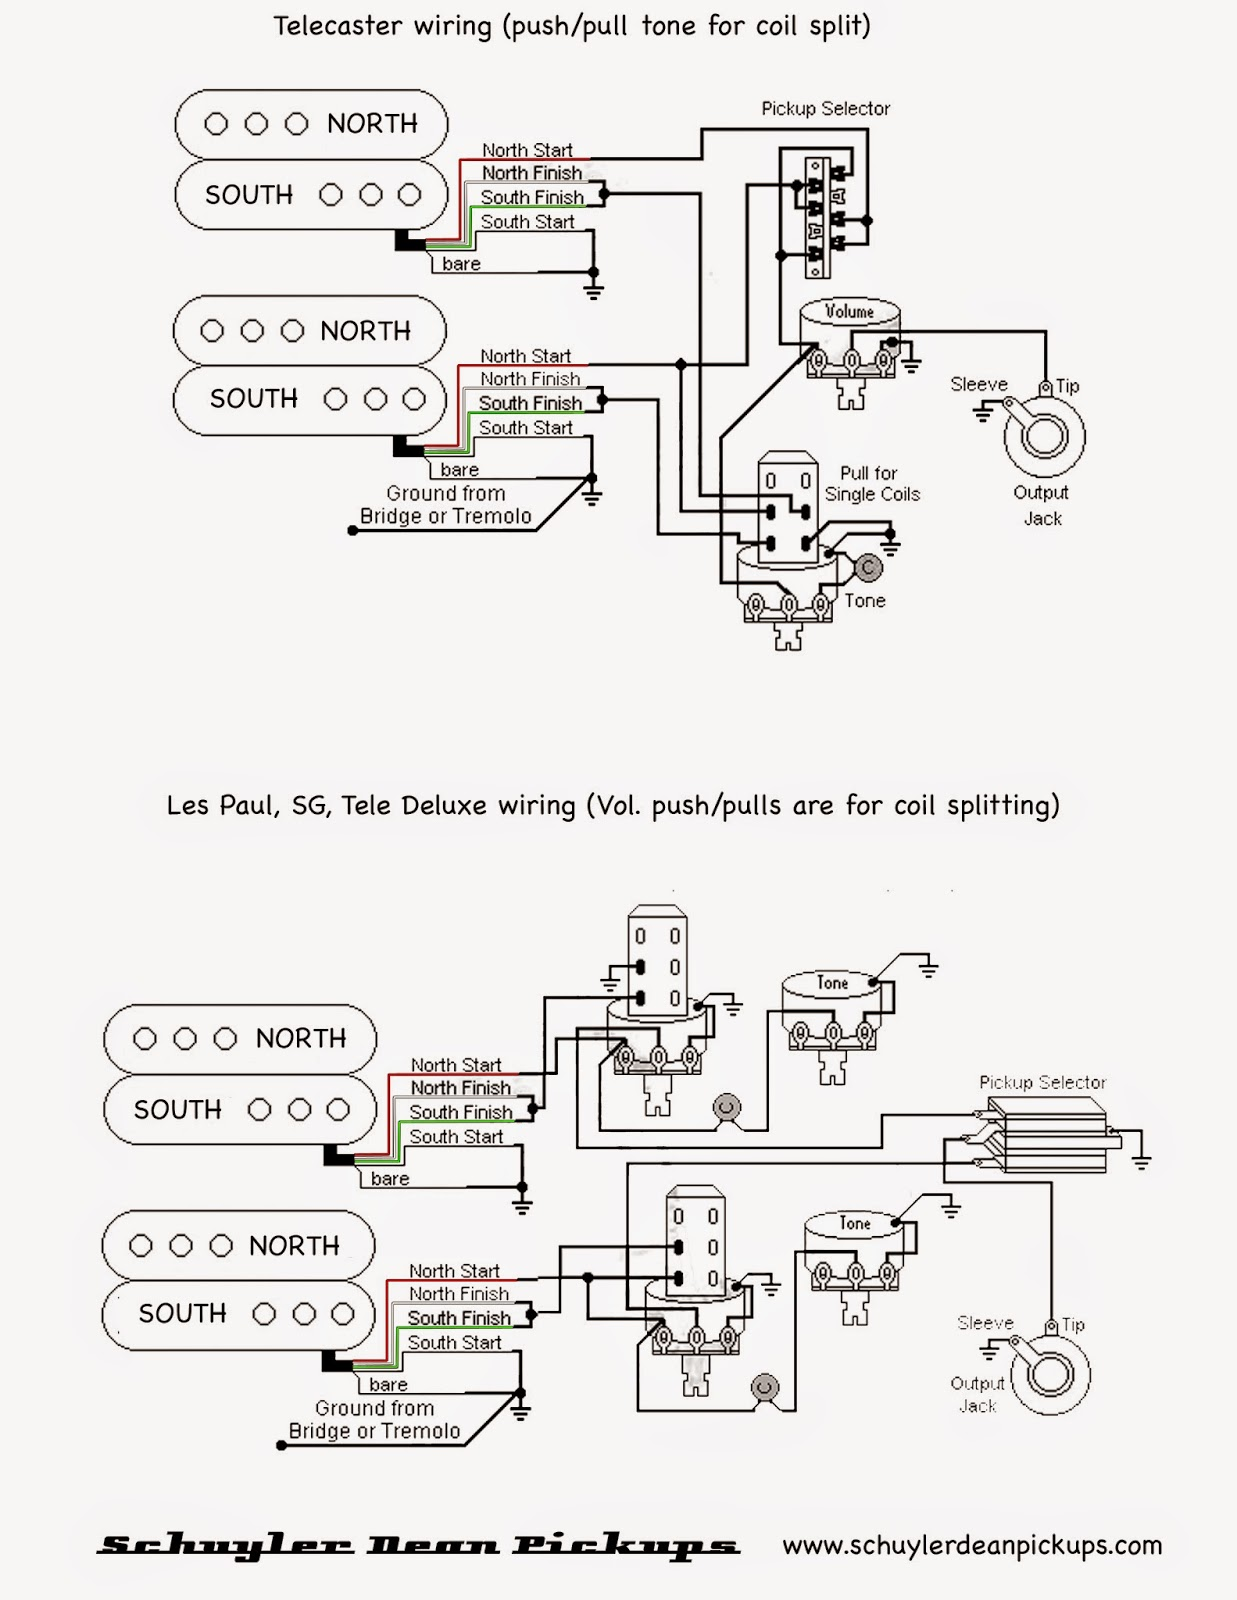 Wiring%2Bdiagram%2BTele LP coil tap wiring diagram push pull seymour duncan coil tap wiring warman pickup wiring diagram at gsmx.co